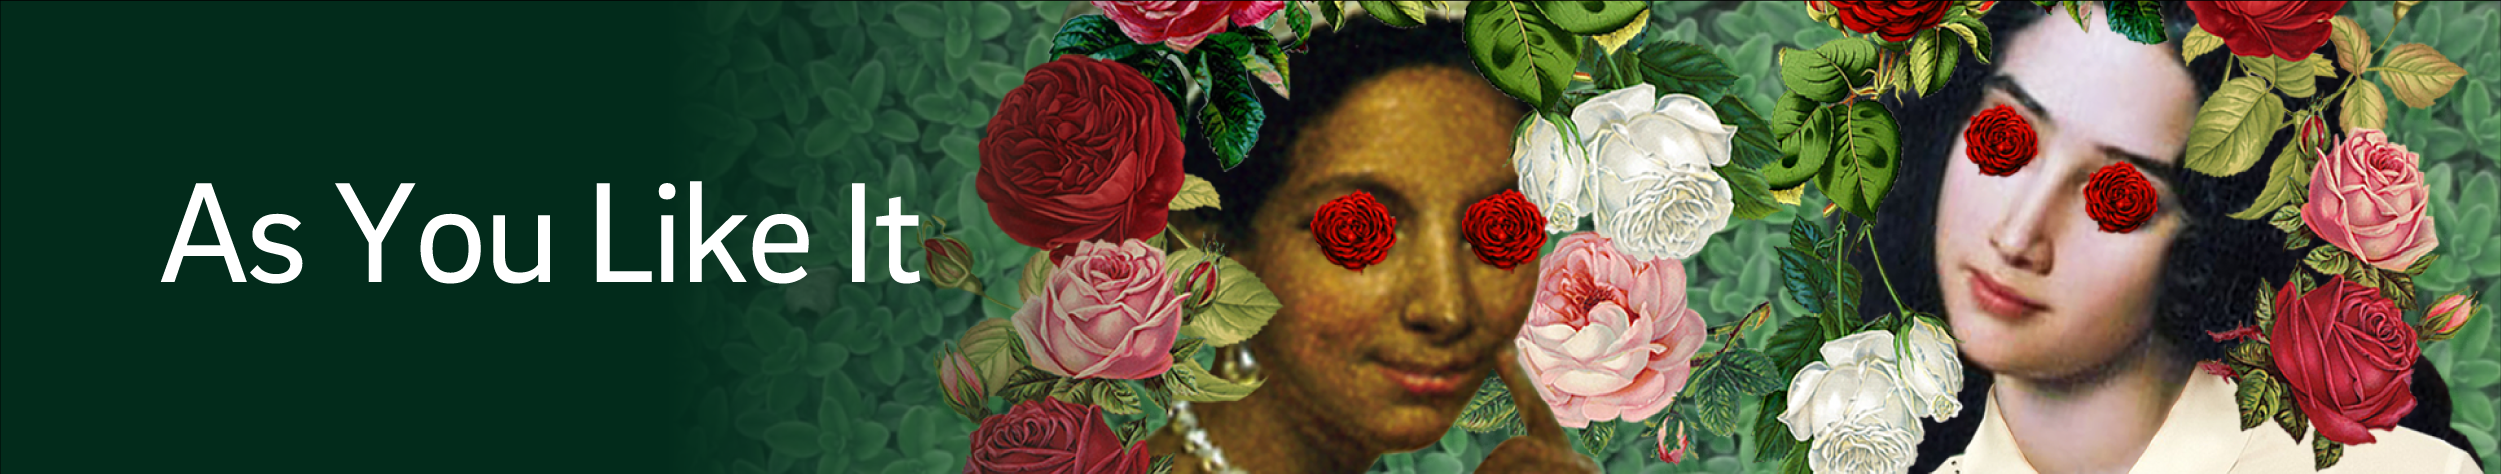 a collage featuring two girls and roses